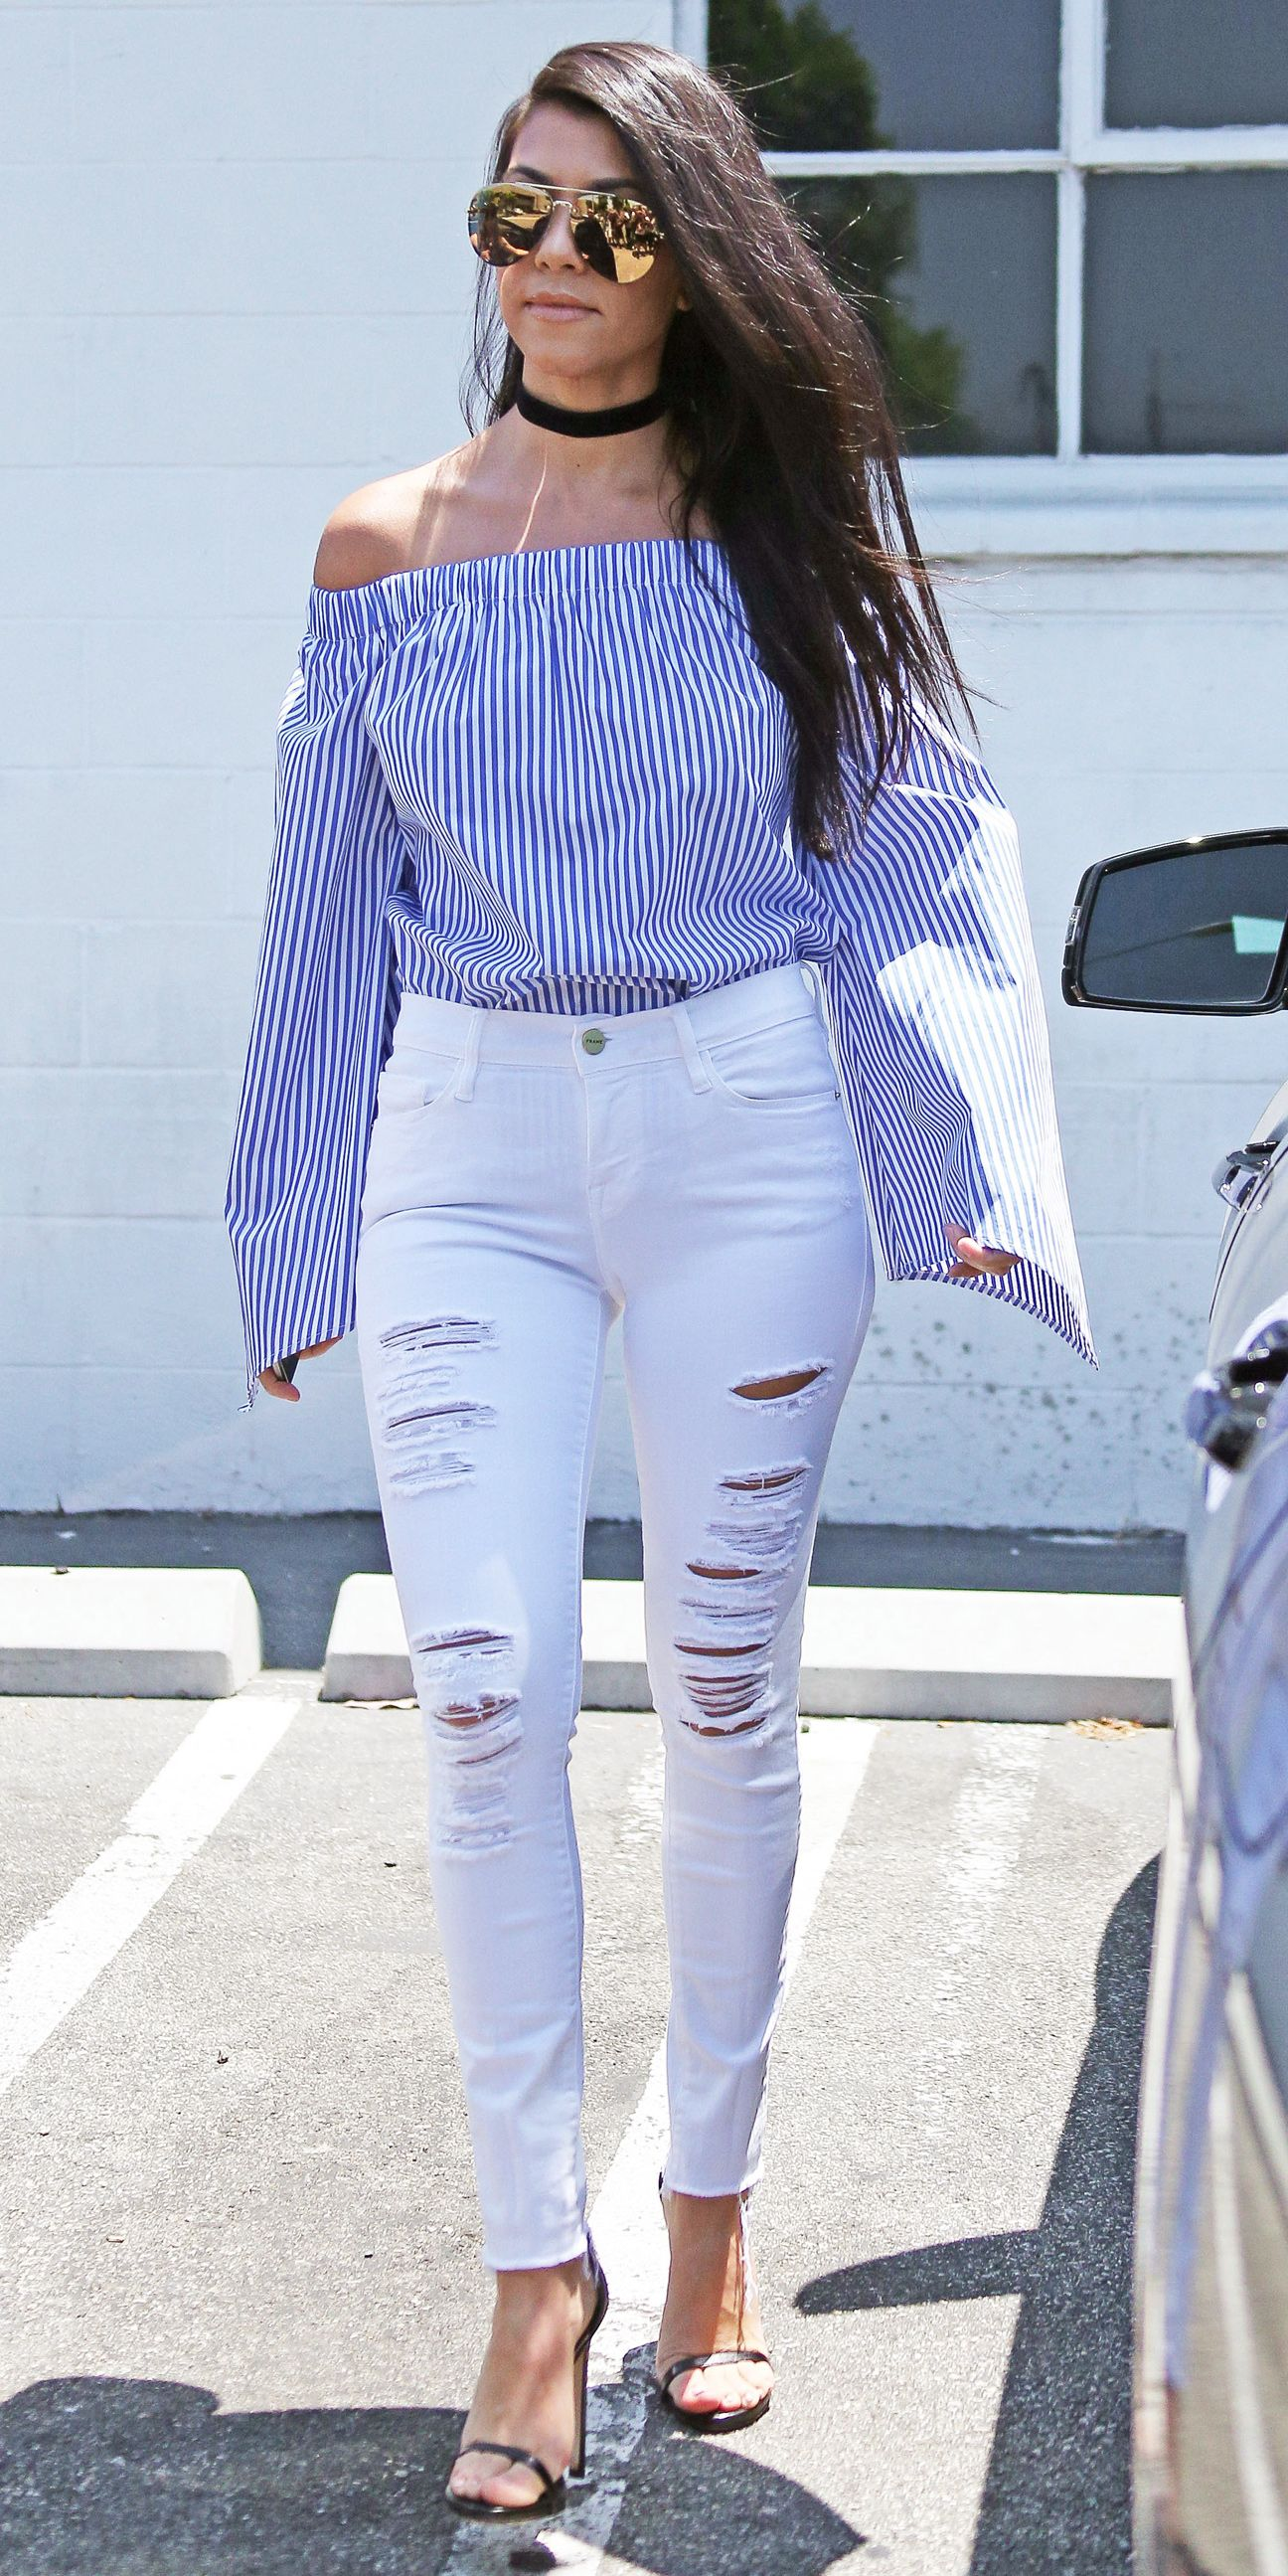 a960afa52bd Kourtney Kardashian in a blue-and-white striped off-shoulder top that she  styled with white destroyed jeans